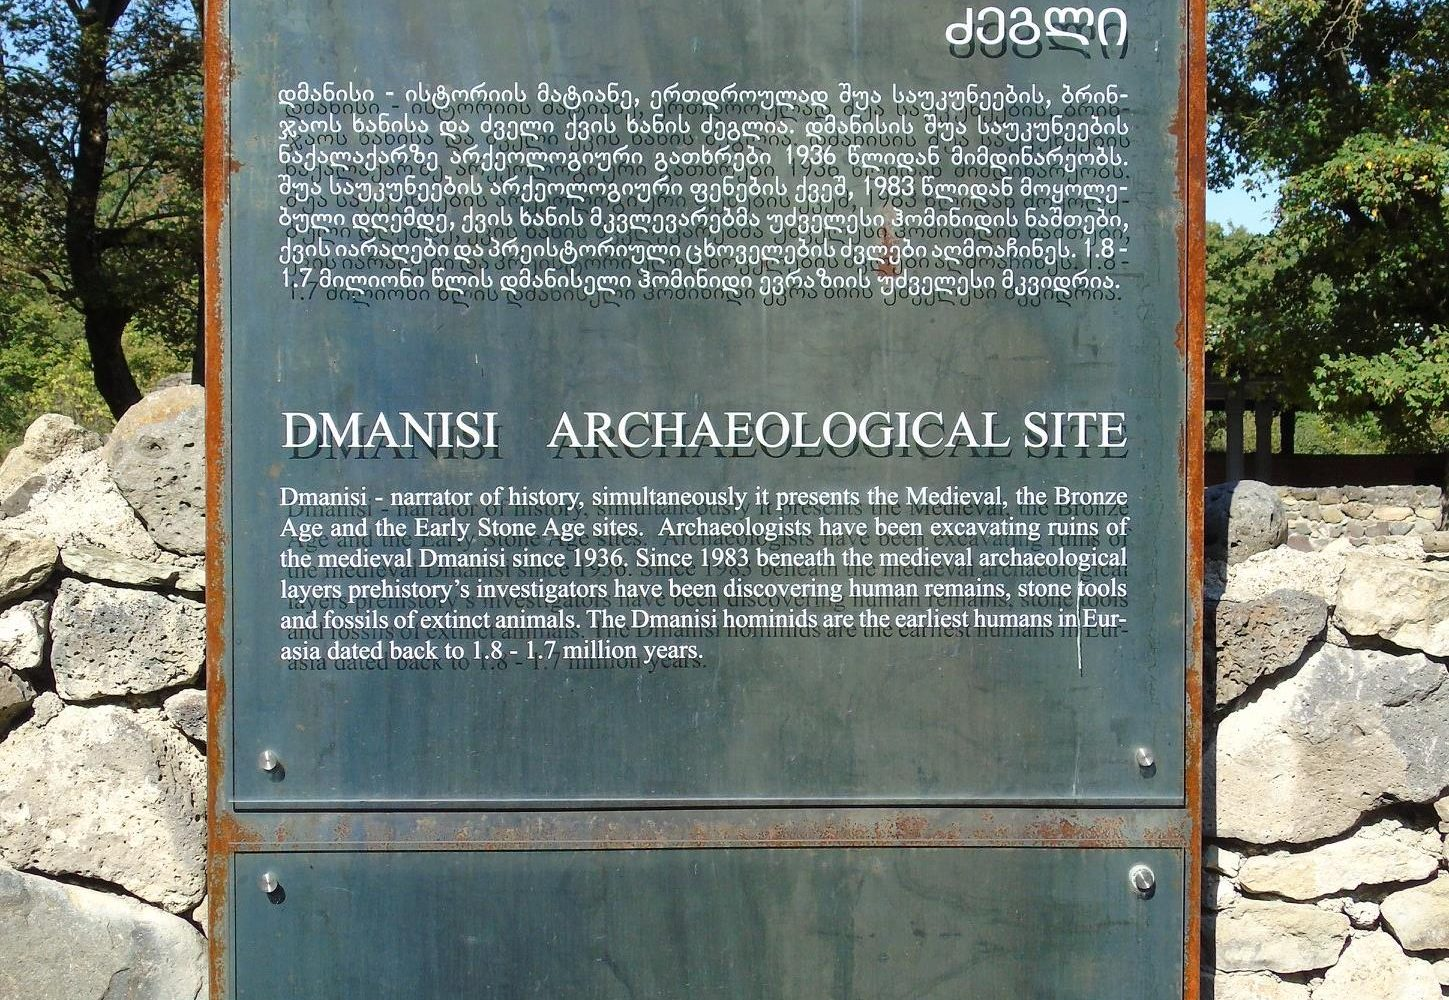 Dmanisiarchaeological expedition